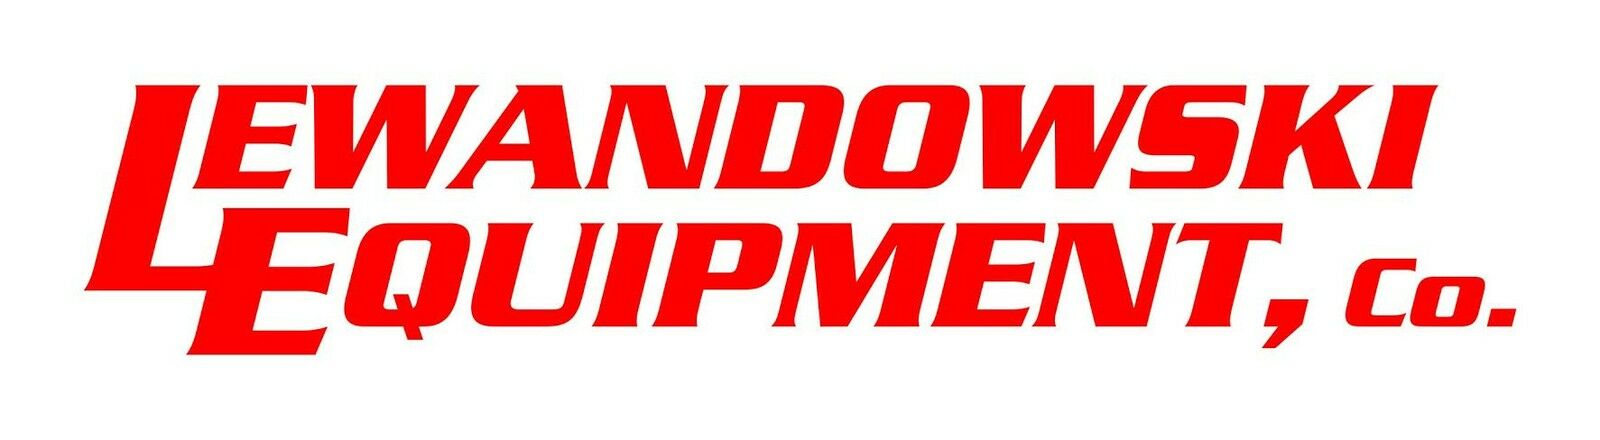 LEWANDOWSKI EQUIPMENT COMPANY